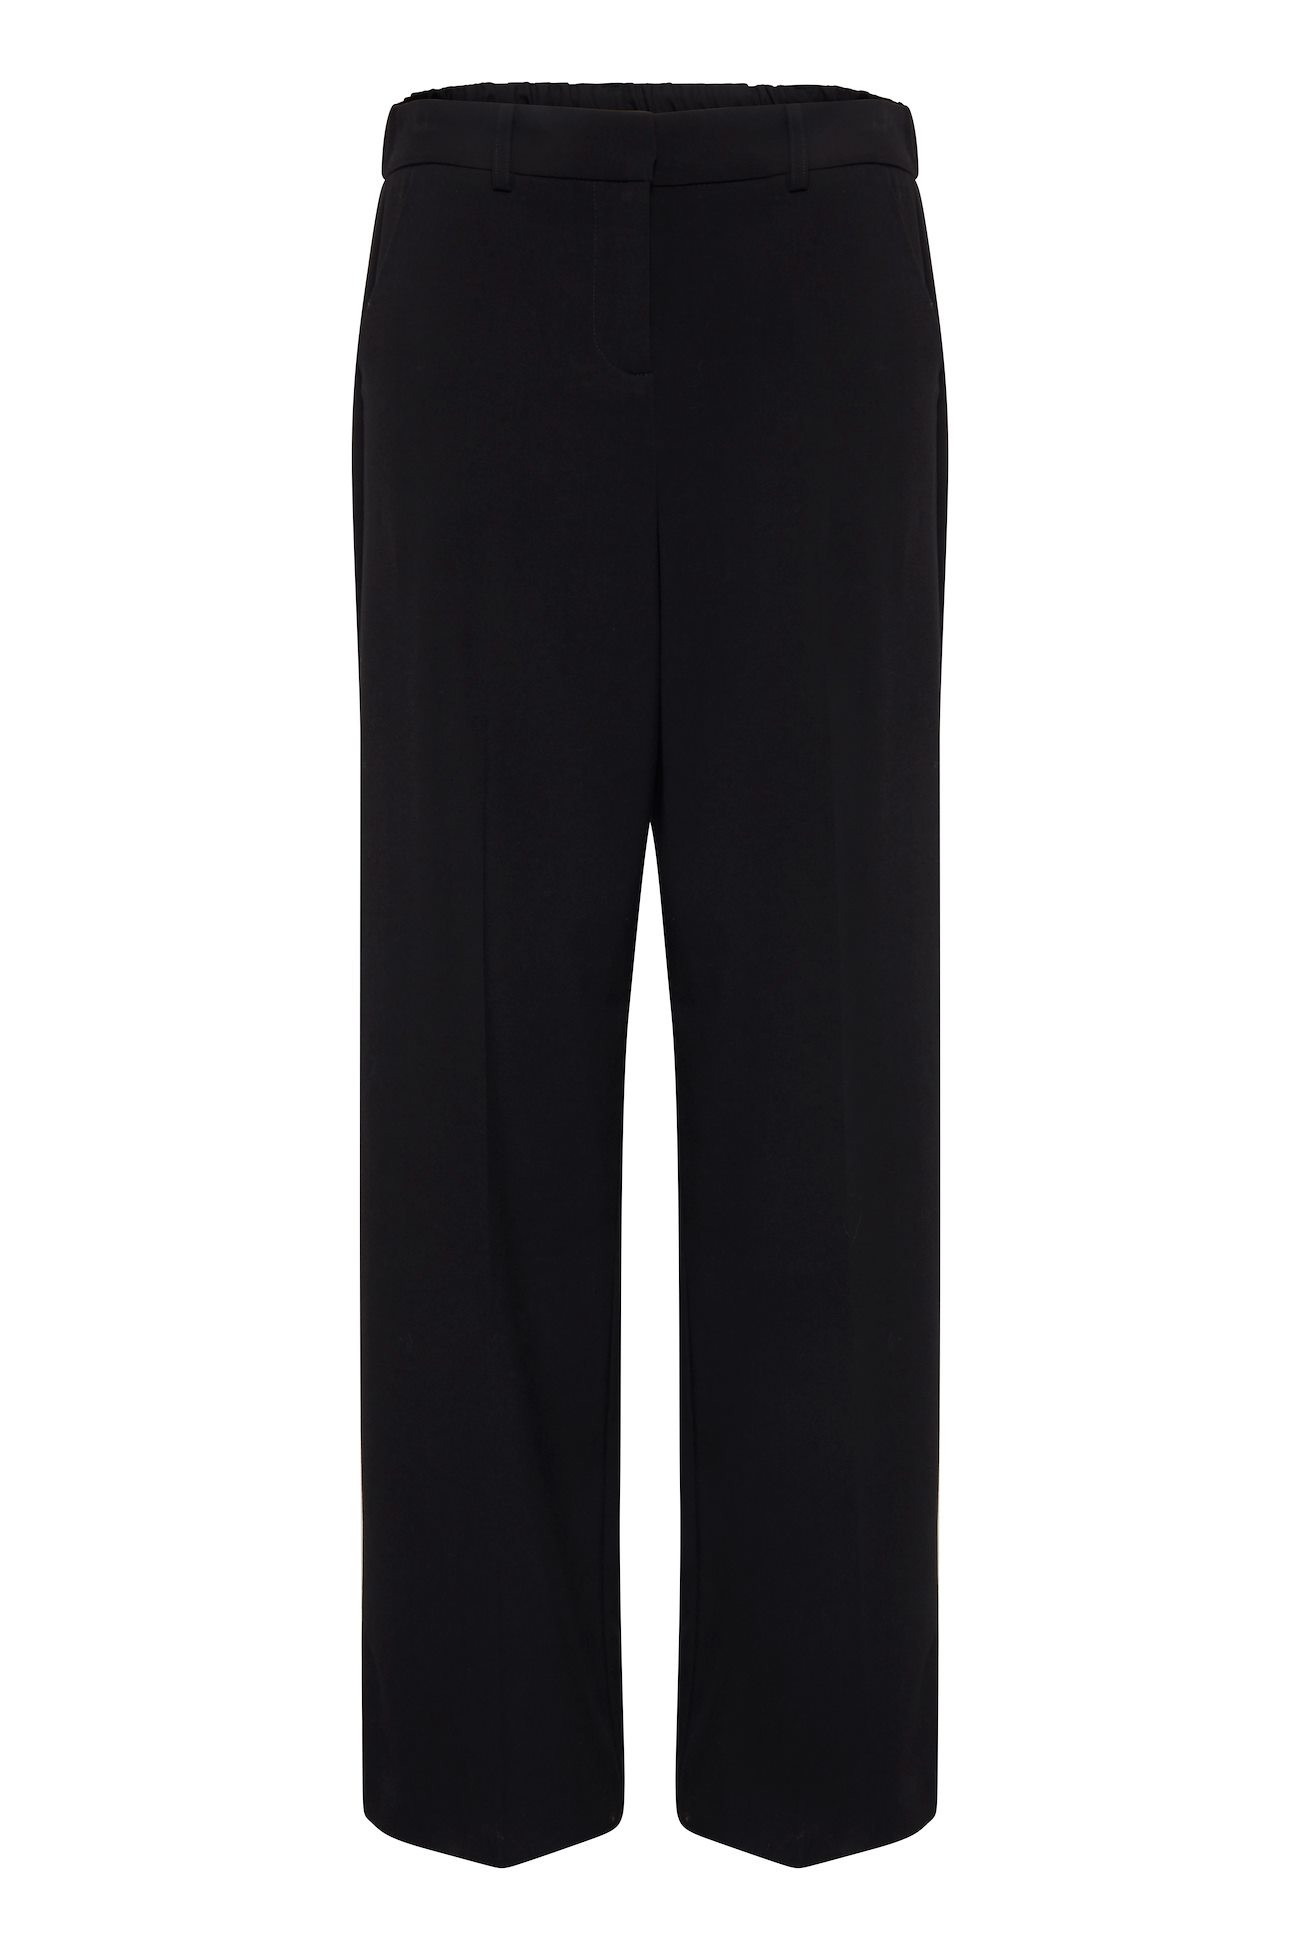 B.YOUNG BYDANTA WIDE LEG PANTS 2 - 36 80001 Black